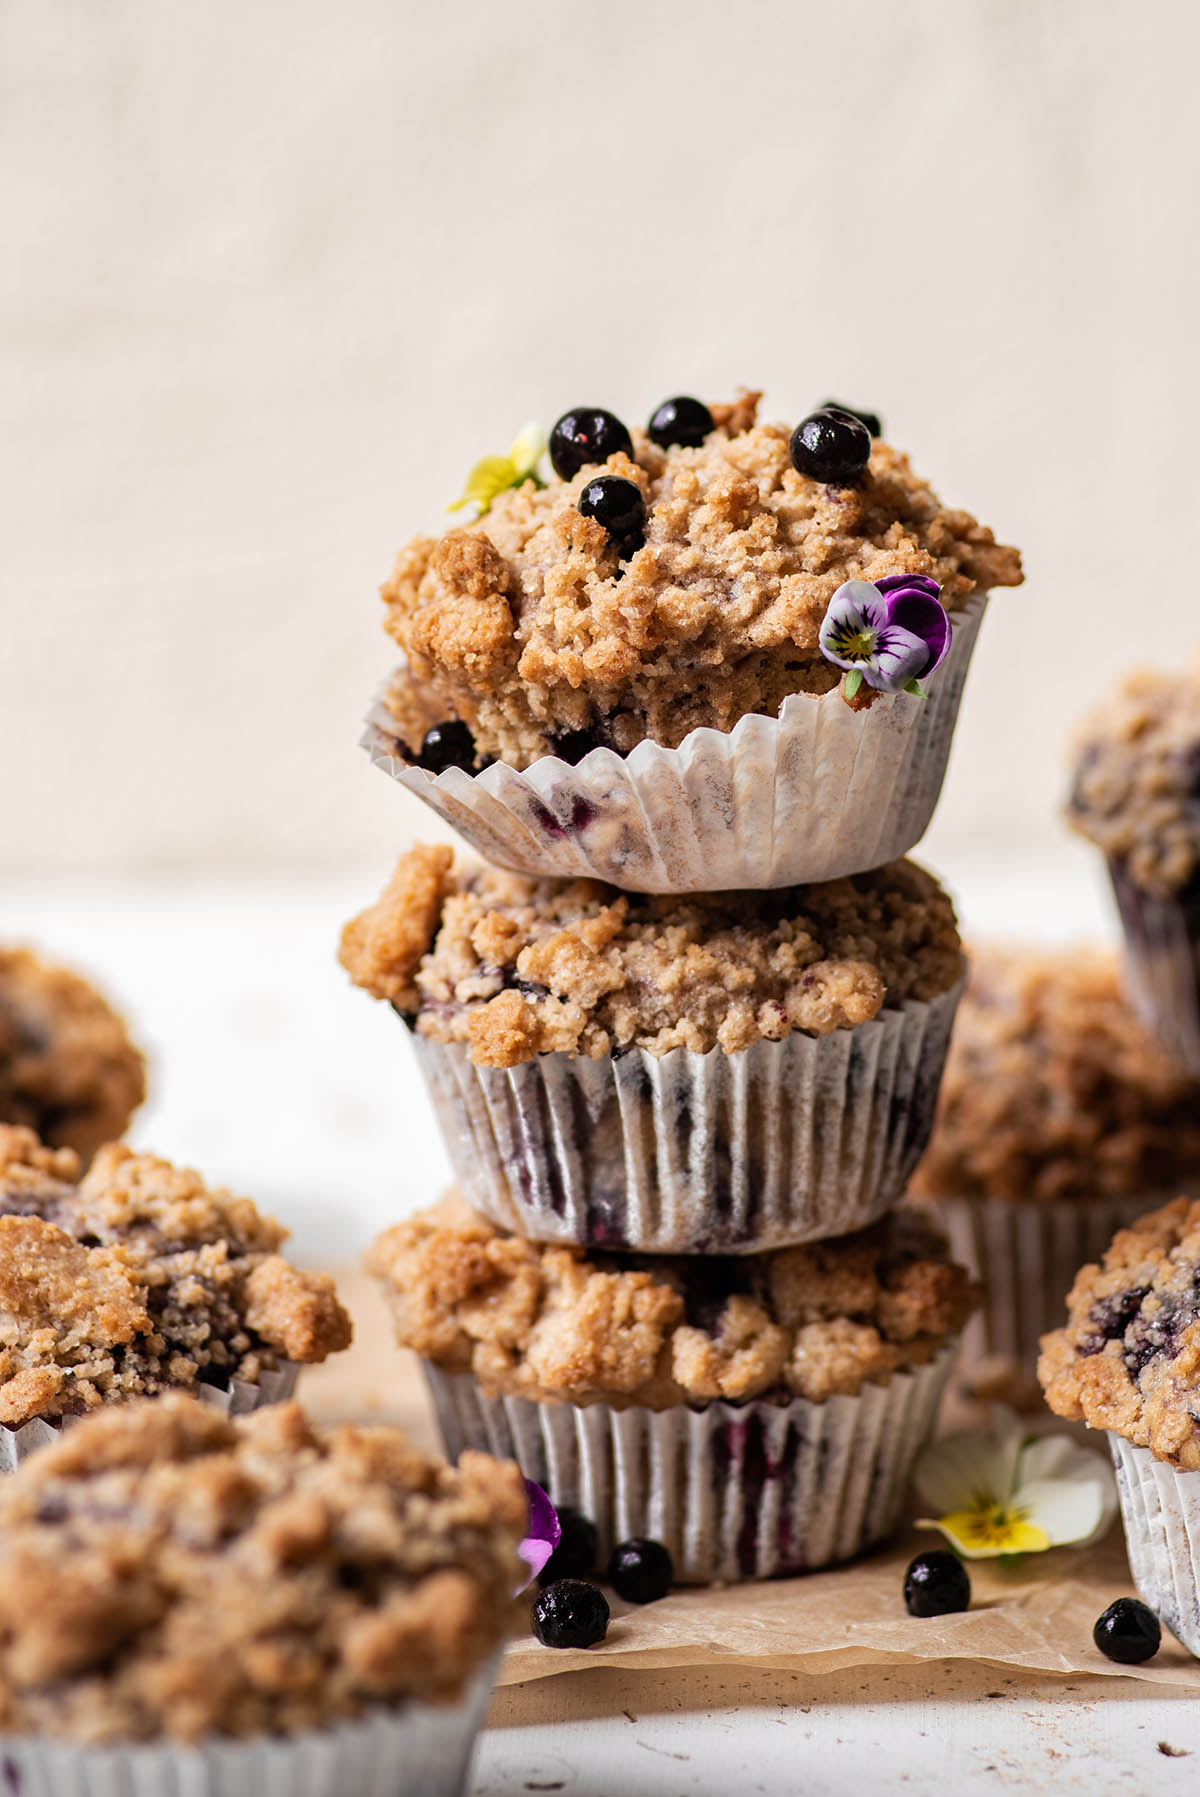 A stack of three blueberry streusel muffins with other muffins surrounding.